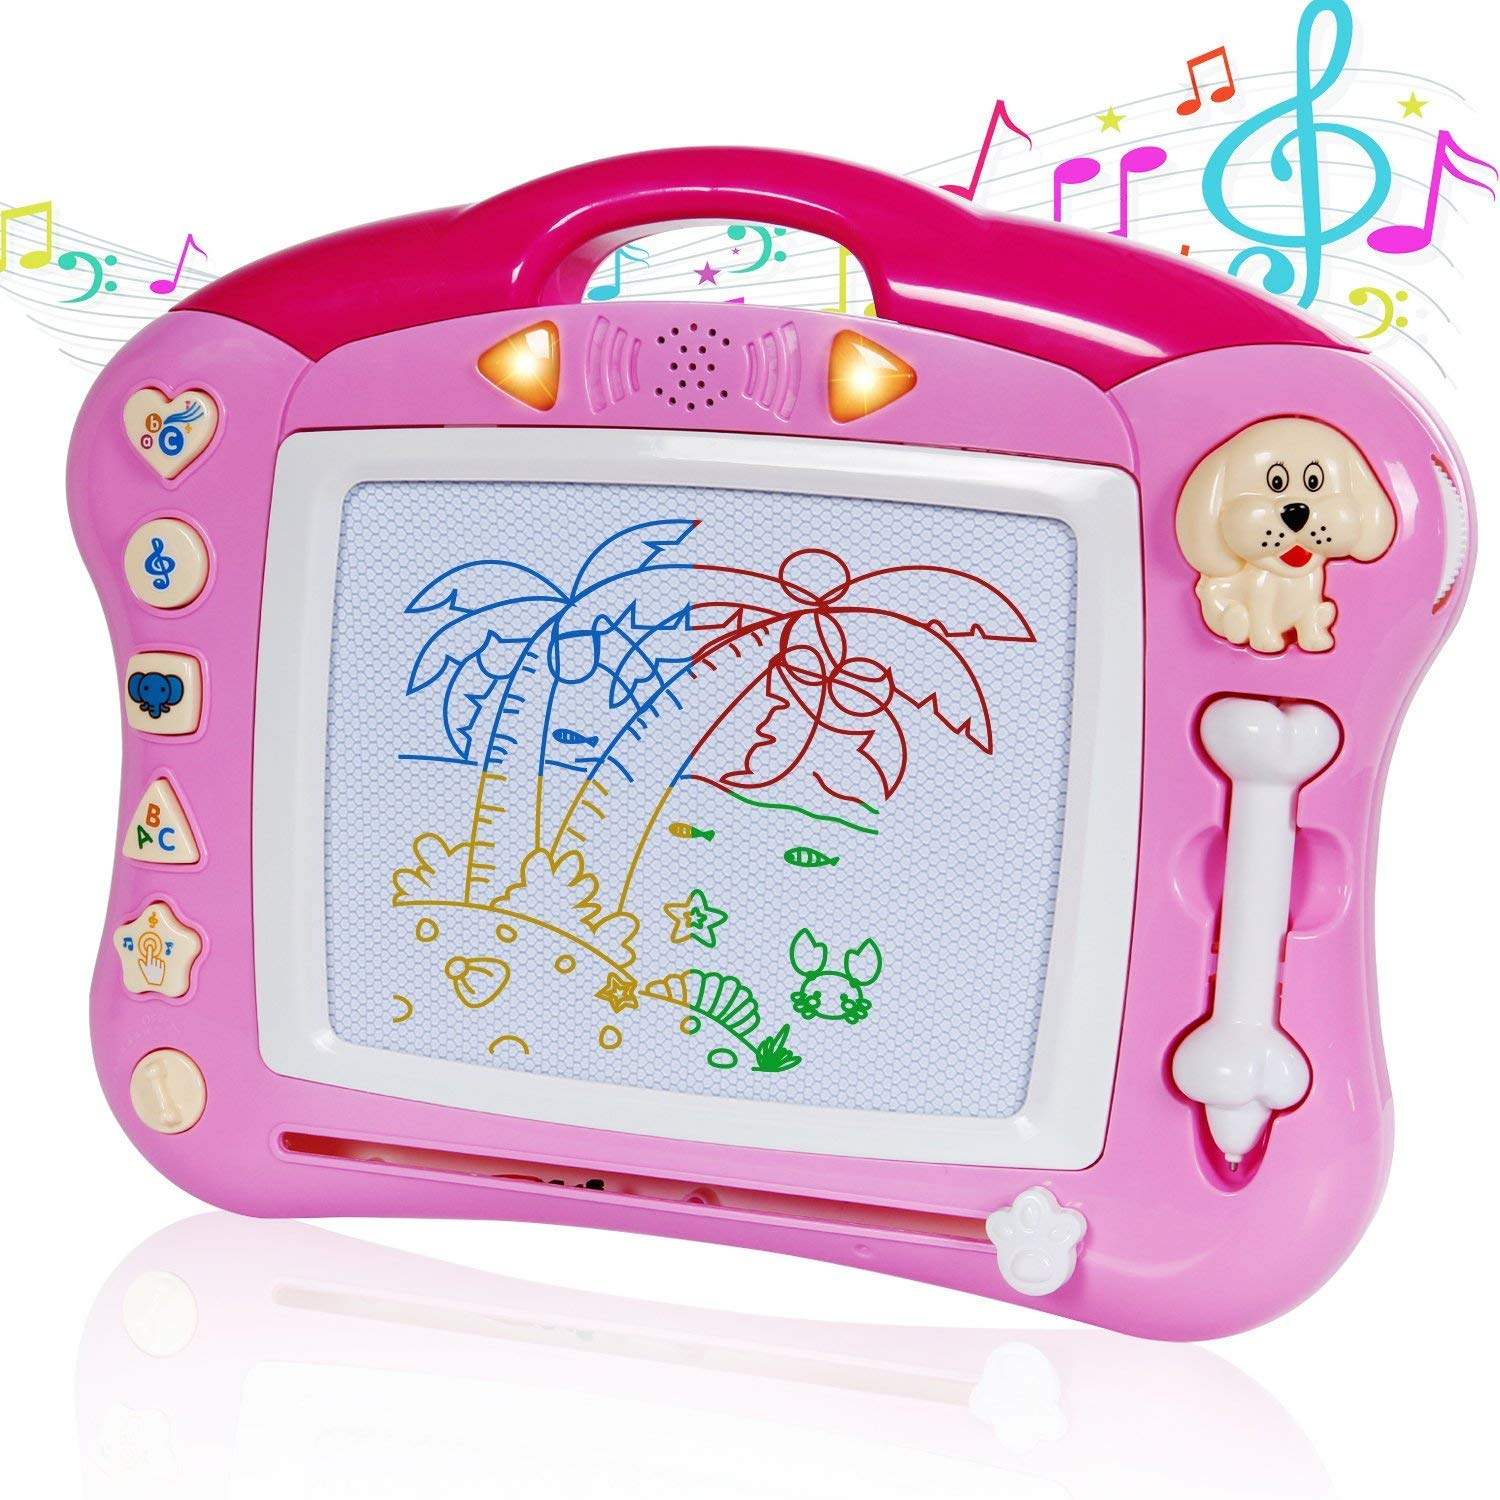 iFixer Magnetic Drawing Board, Musical Color Magna Doodle Writing Drawing Board with Light and Music Great Gift Presents For Boys And Girls 3+, Pink With Sounds